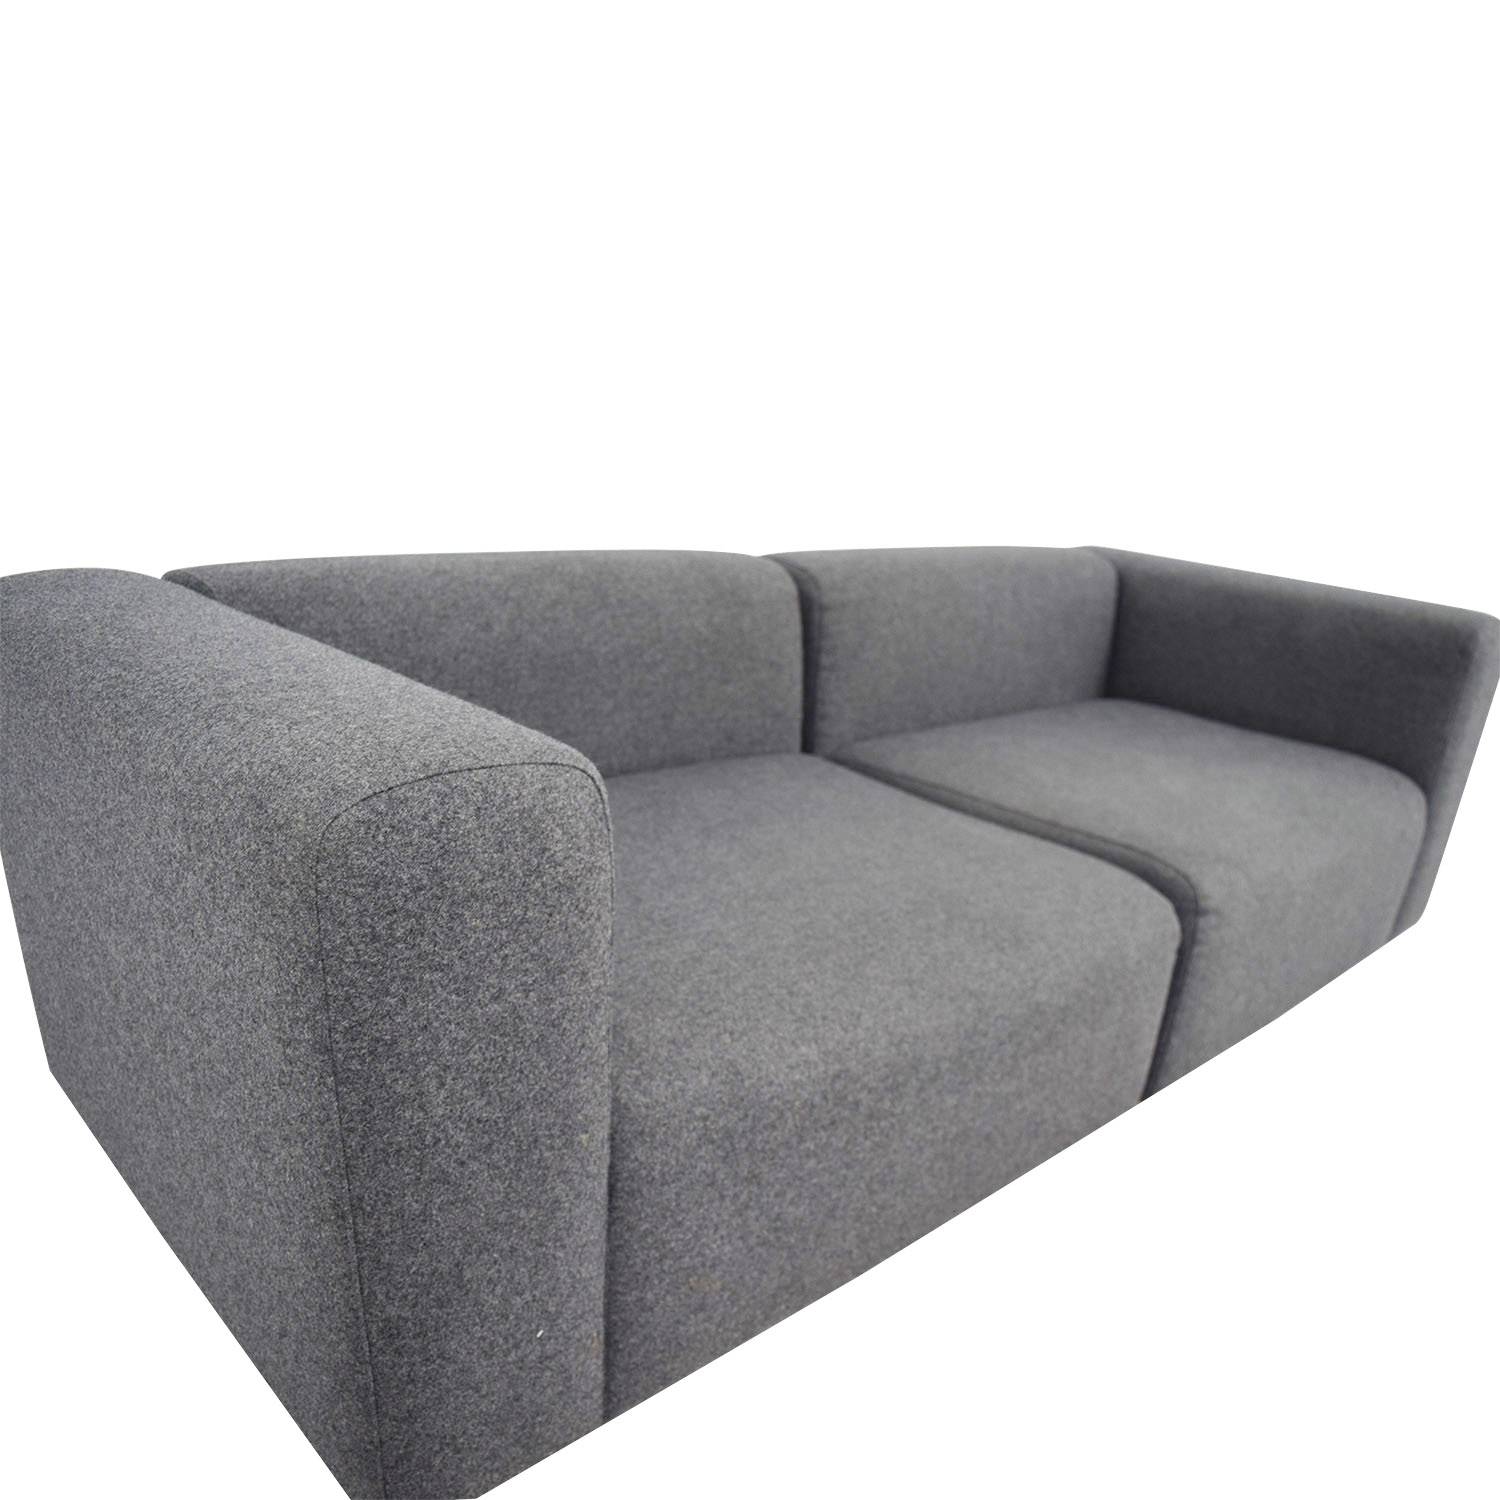 35 off hay hay mags modular grey sectional sofas. Black Bedroom Furniture Sets. Home Design Ideas